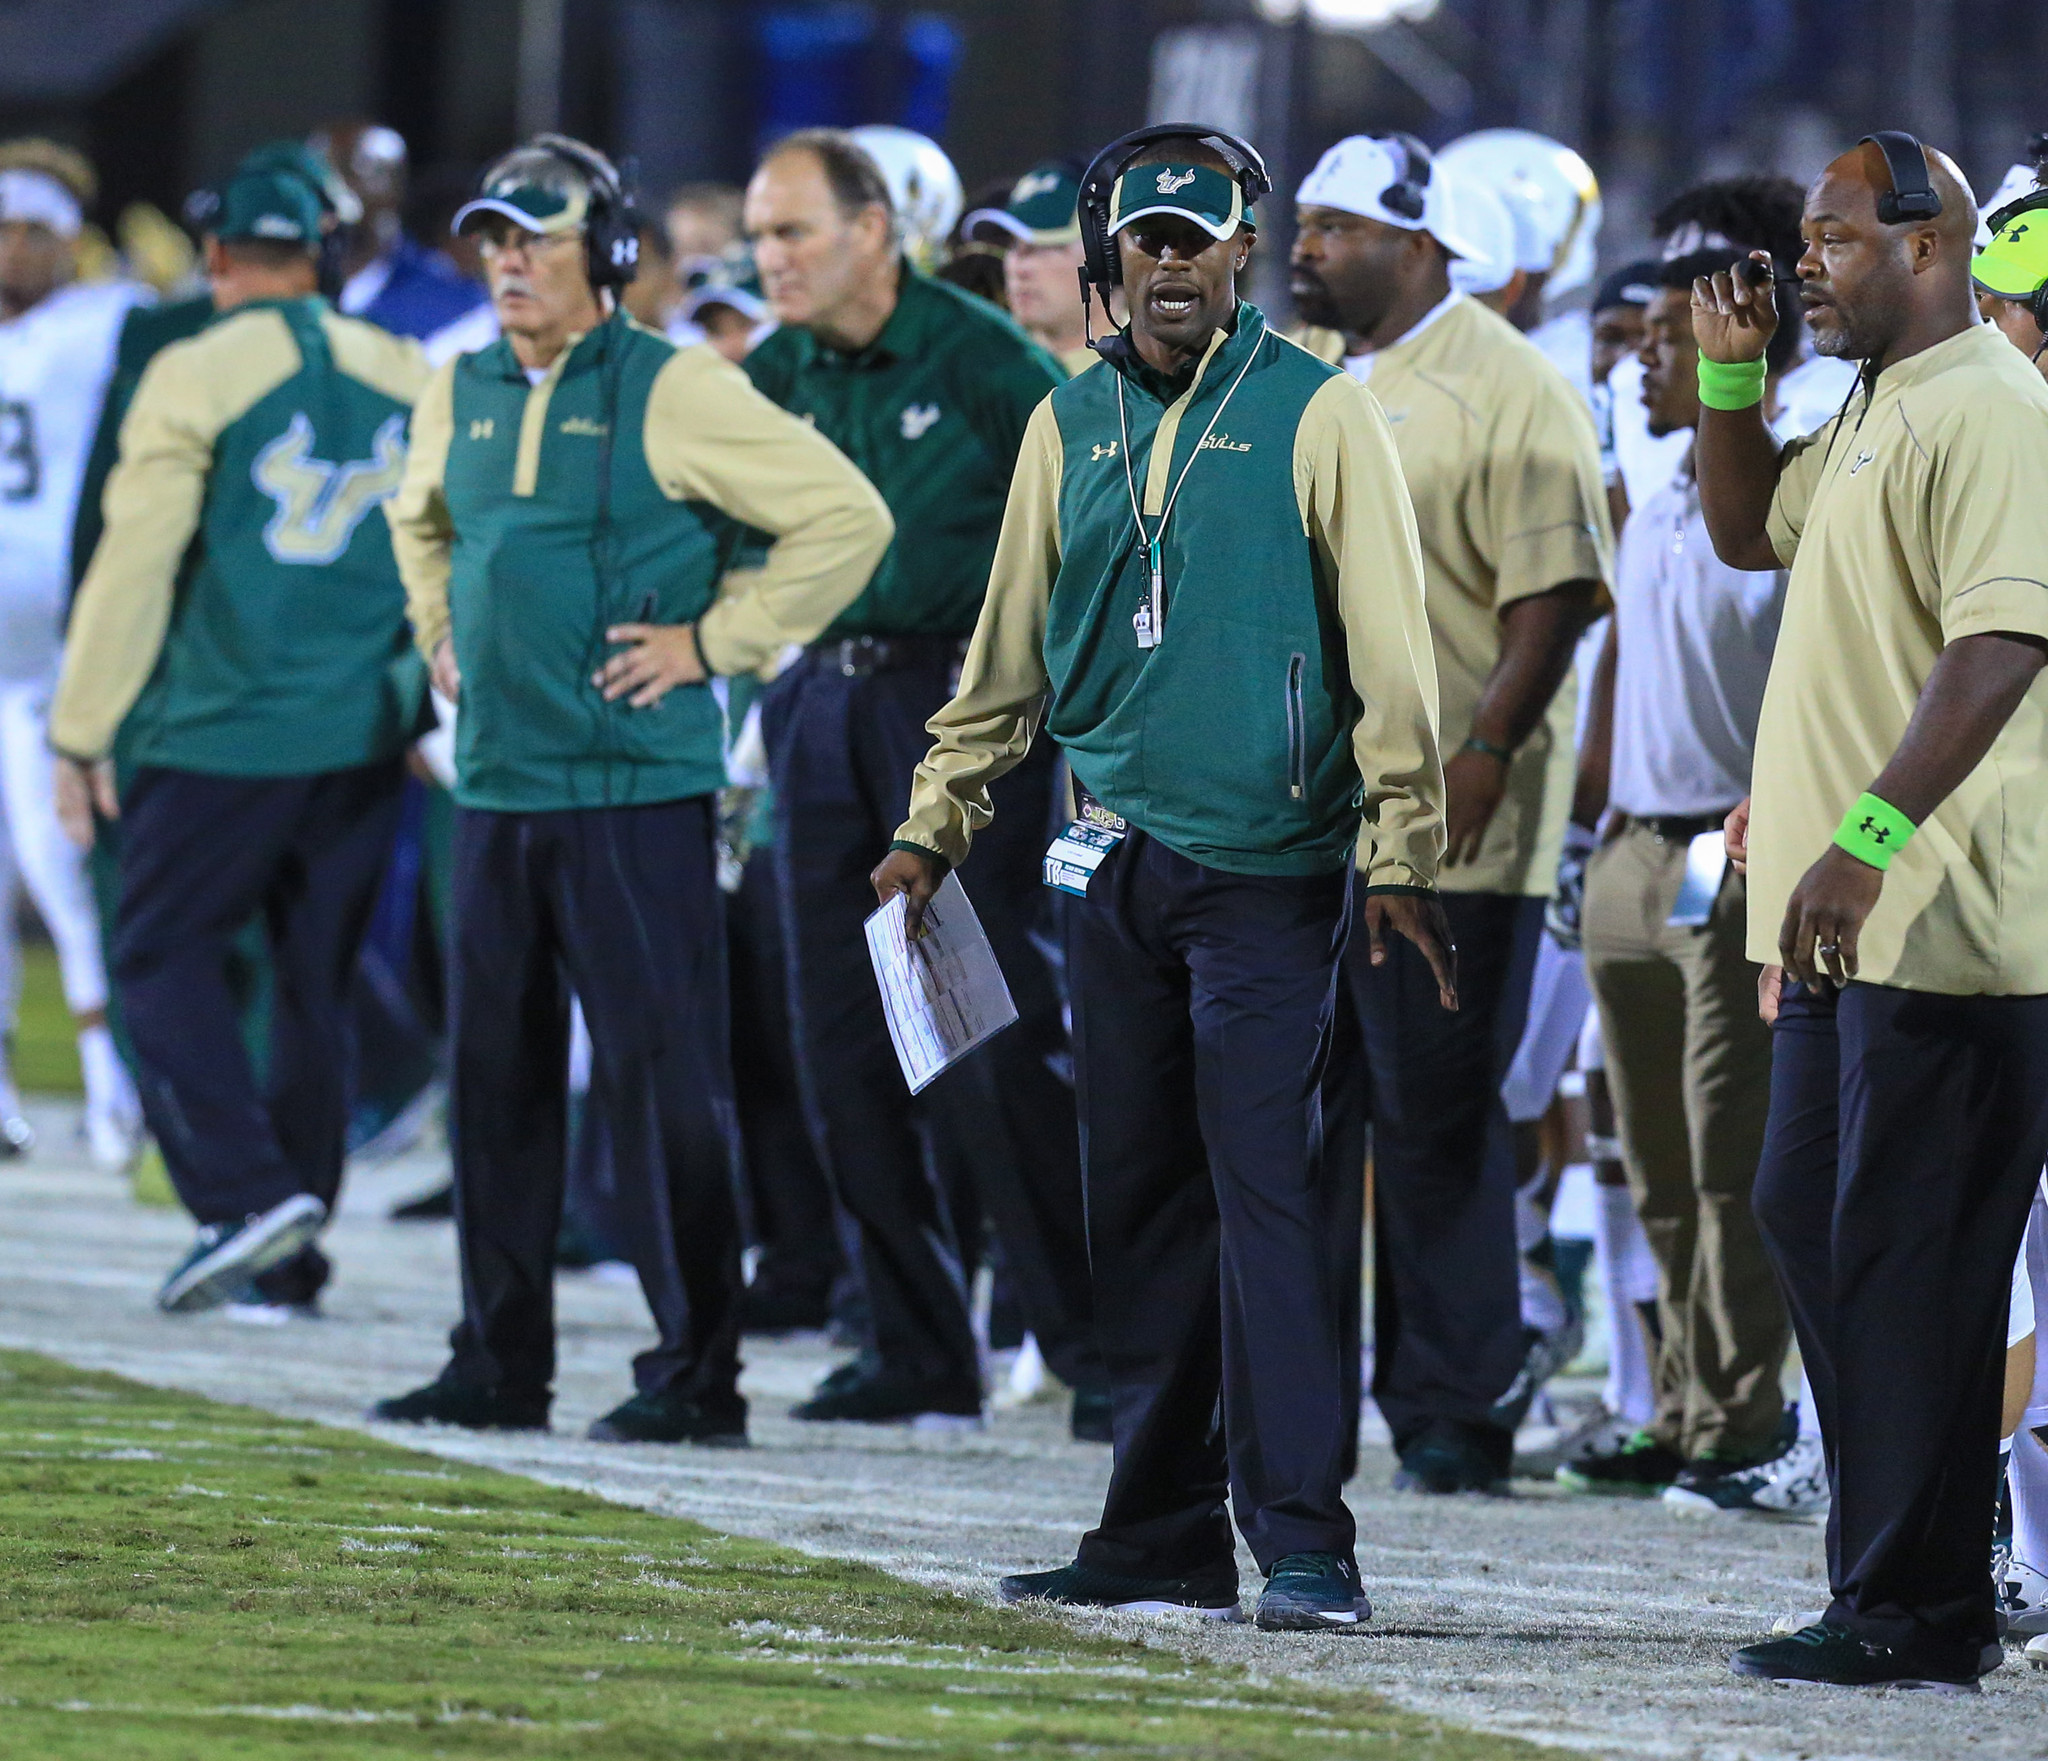 Os-usf-willie-taggart-0201-20160131